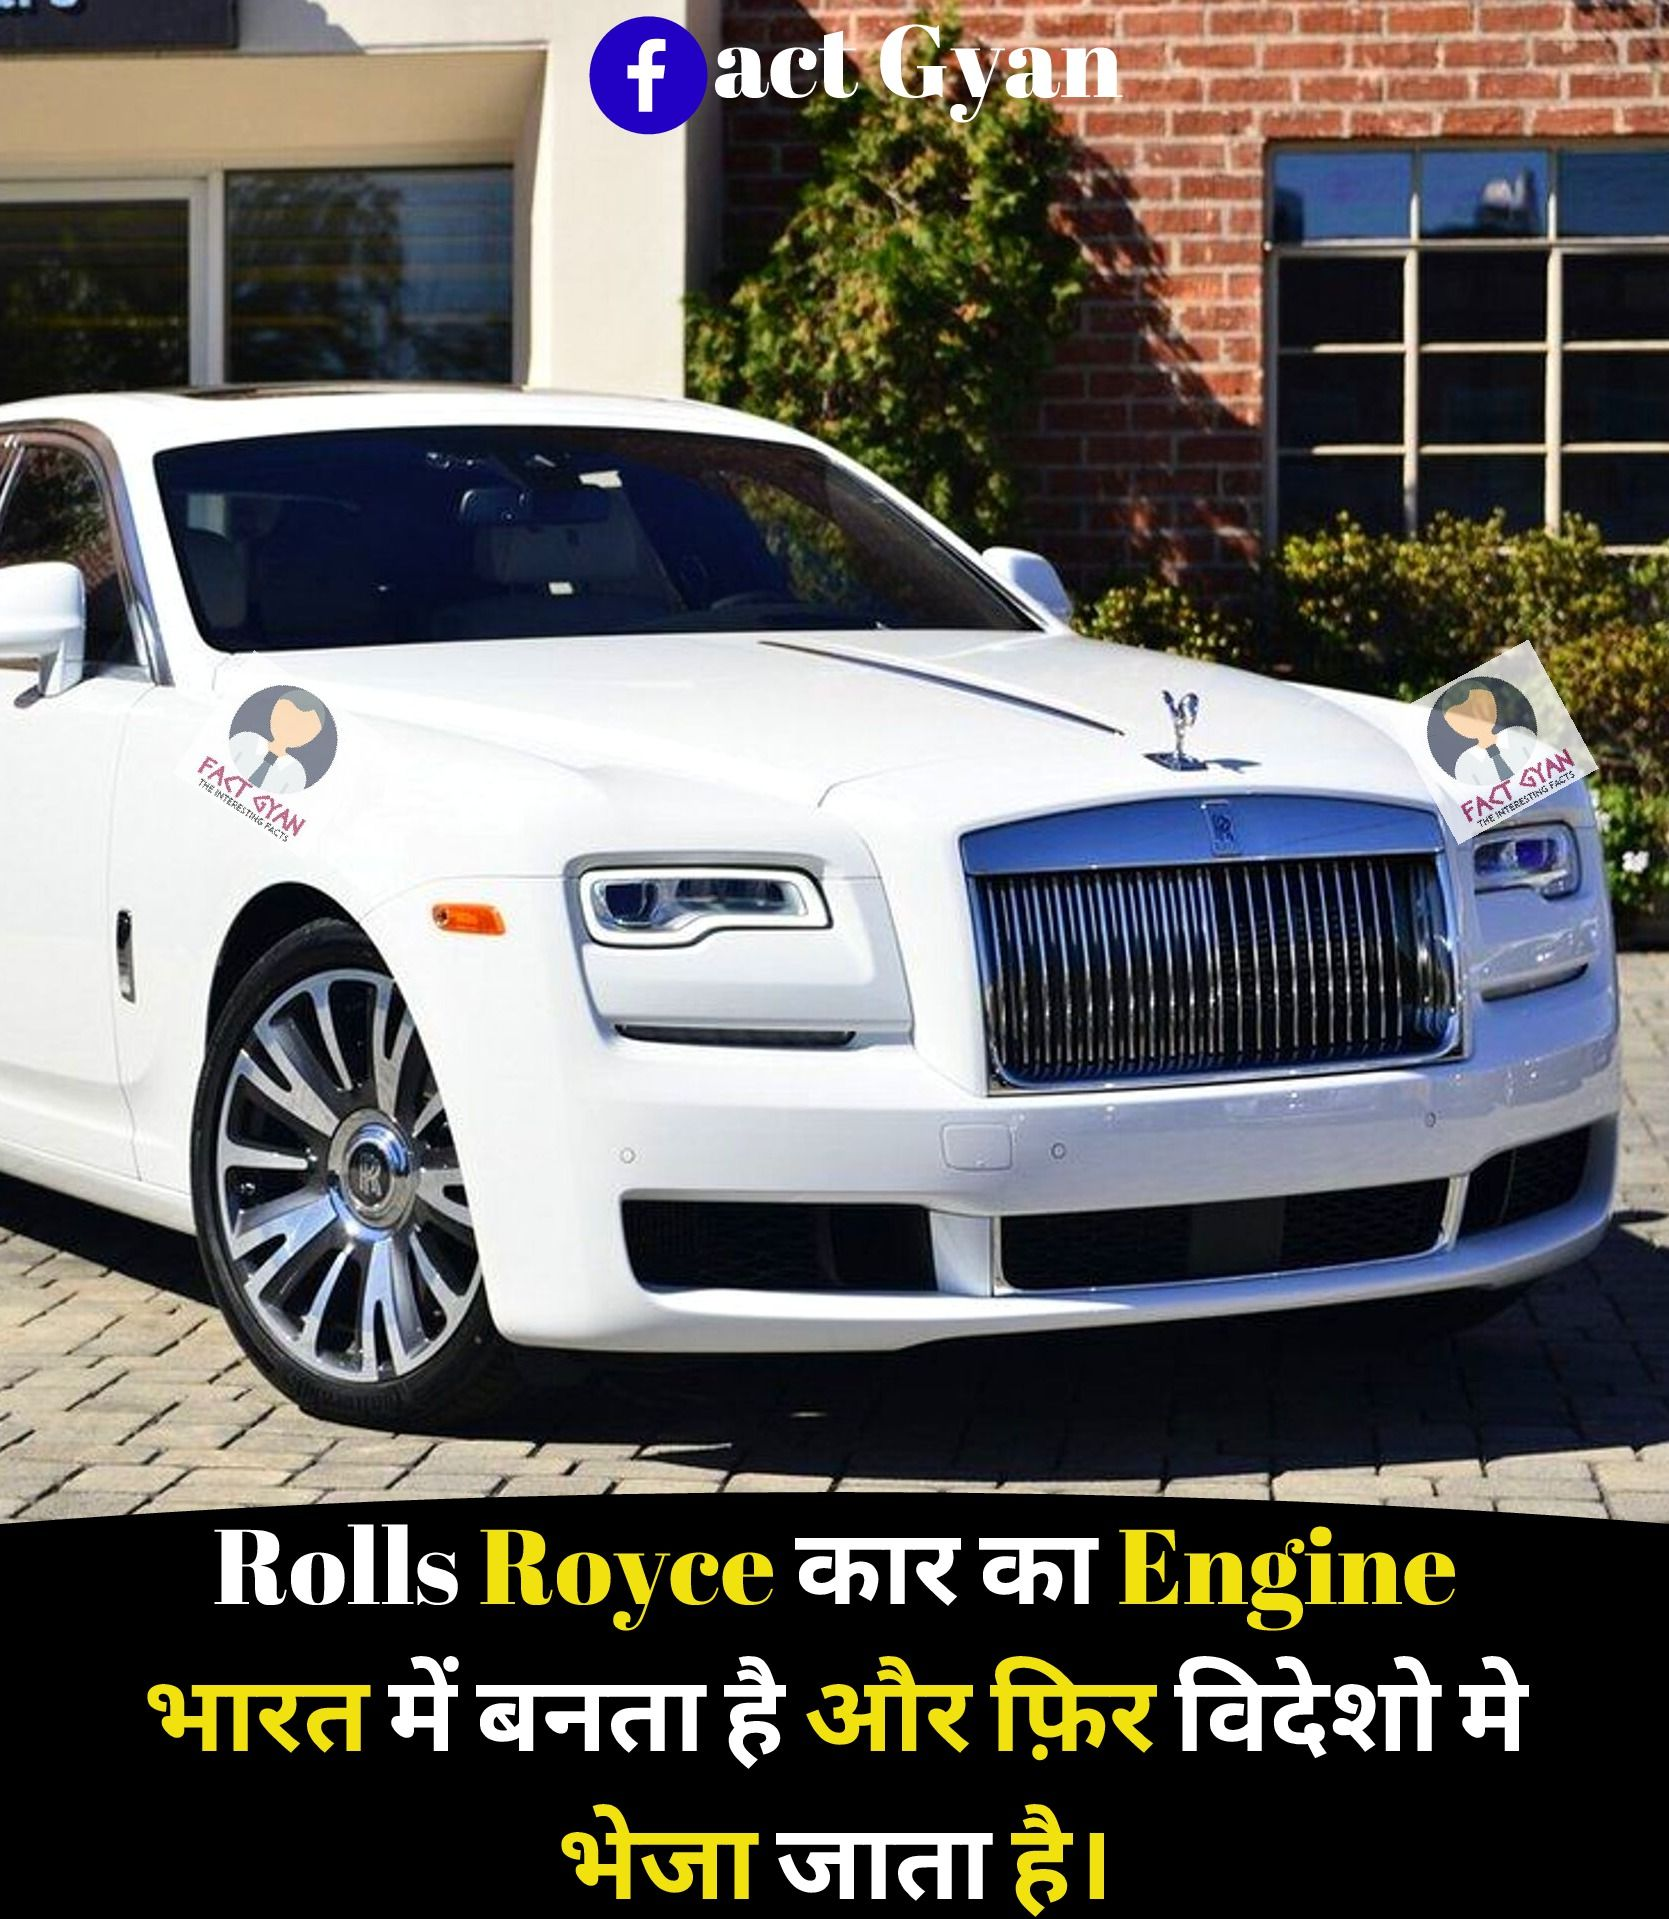 Click For More Amazing Facts Interesting India Hindi